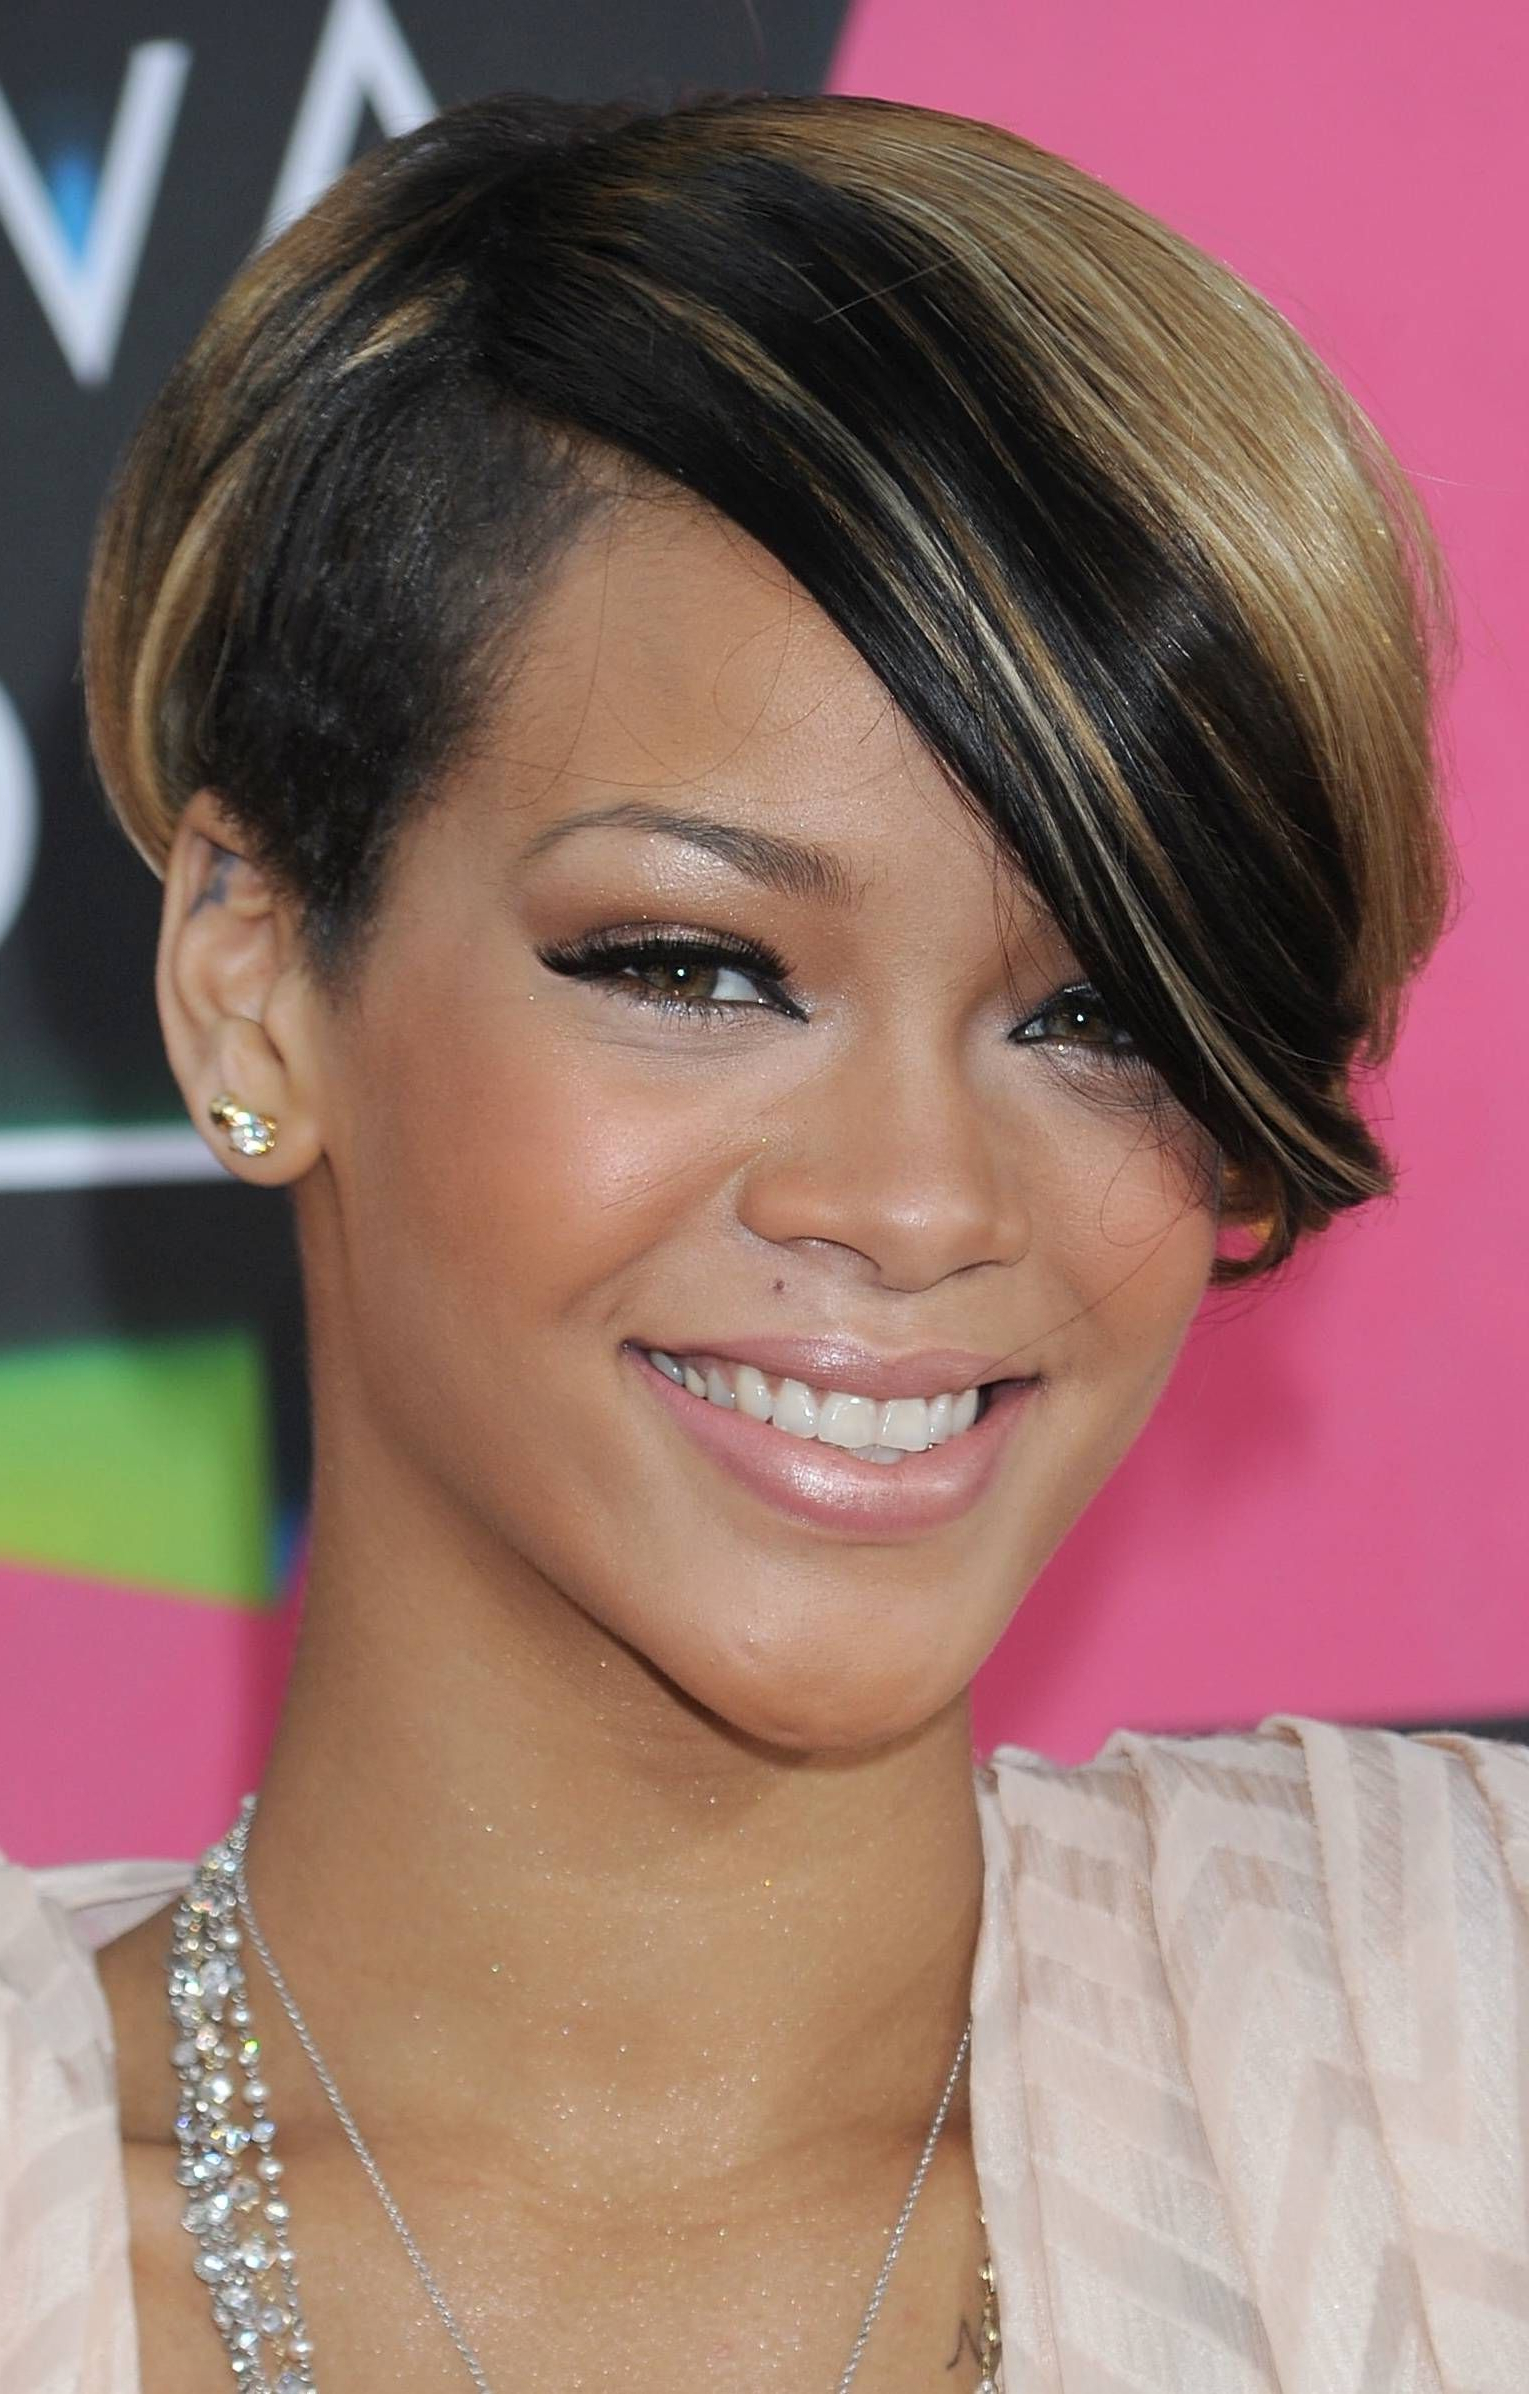 Gorgeous Short, Black Hairstyles | Hair | Pinterest | Hair Styles Regarding Short Haircuts For Round Faces African American (View 3 of 25)